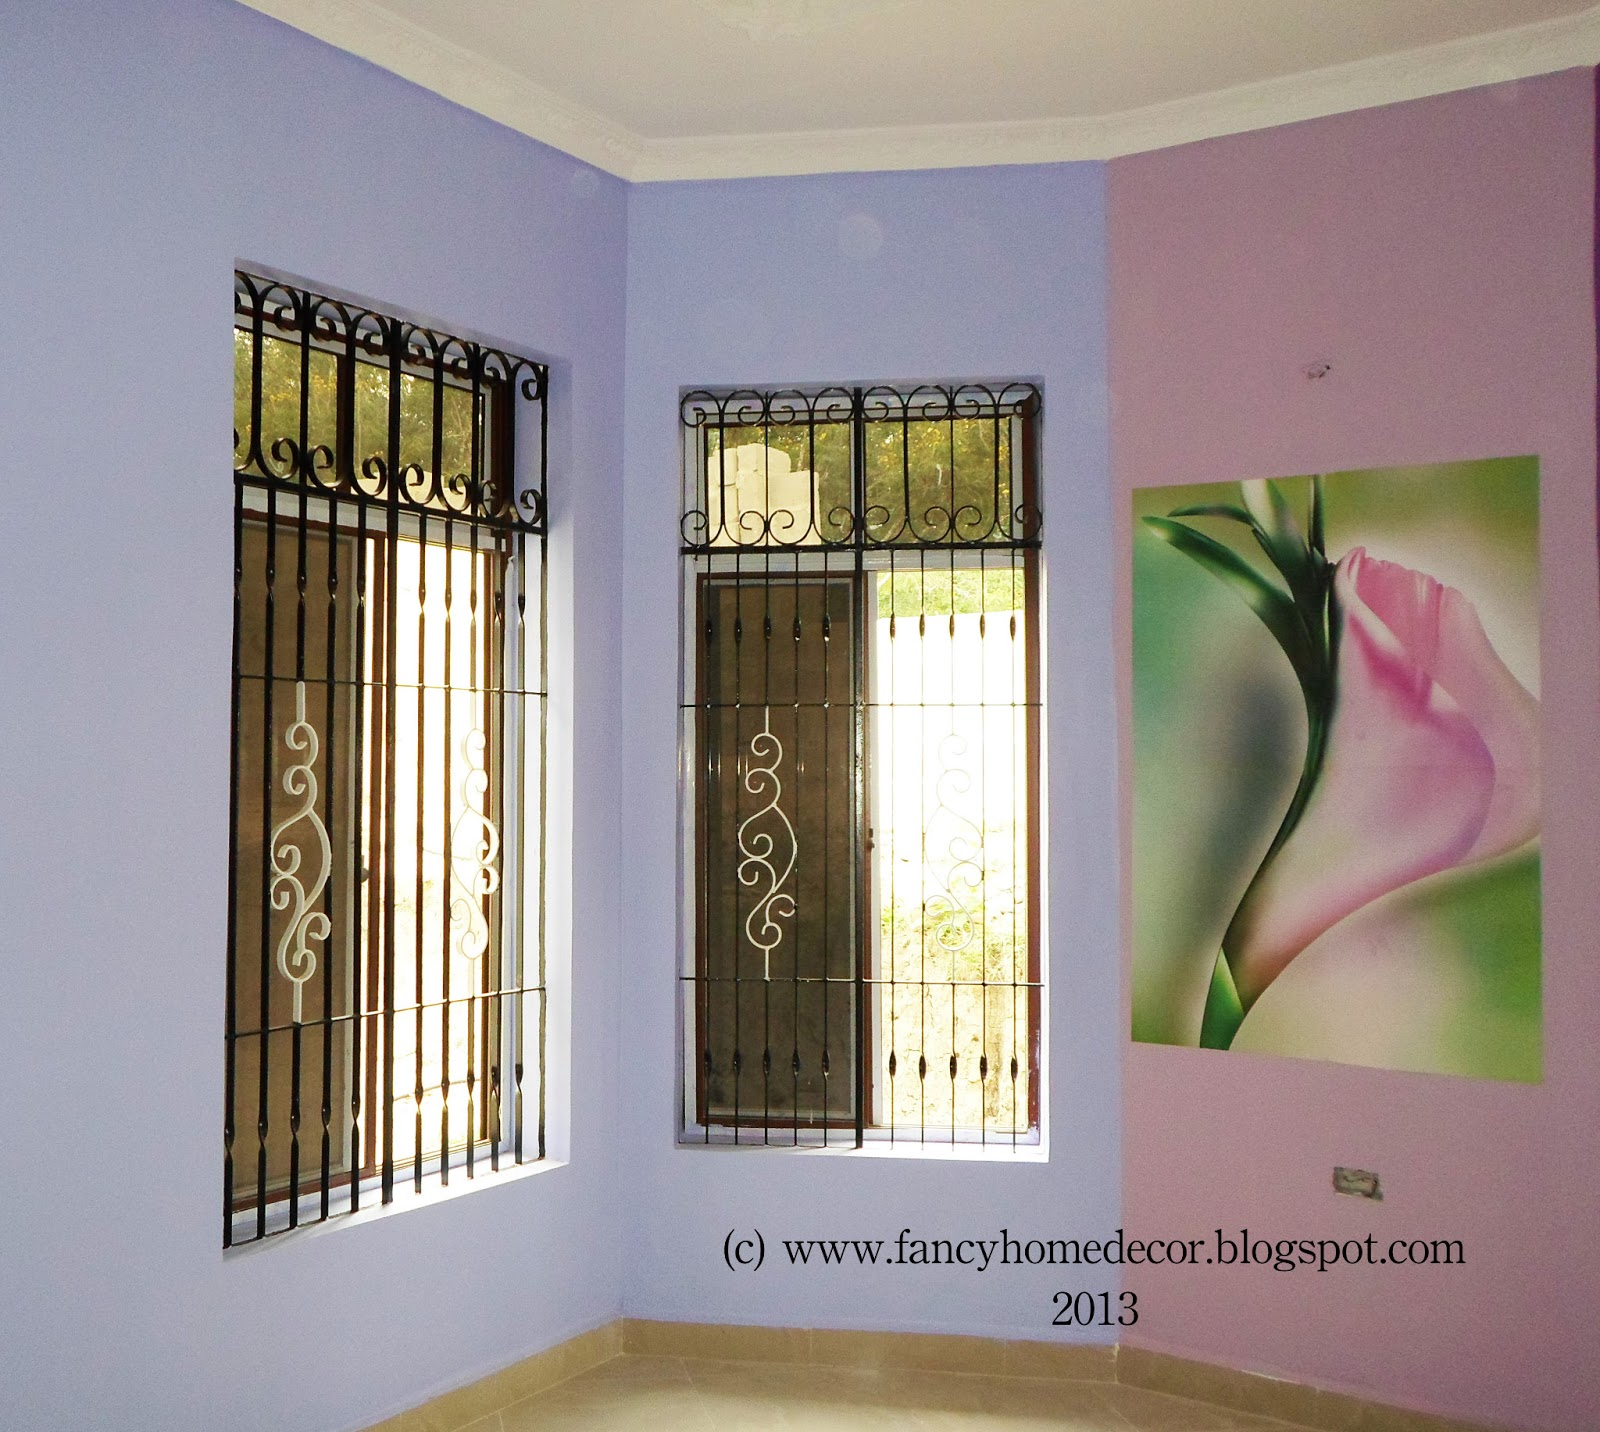 Home Furnishing Websites: Fancy Home Decor: MY PROJECT: INTERIOR DESIGNING